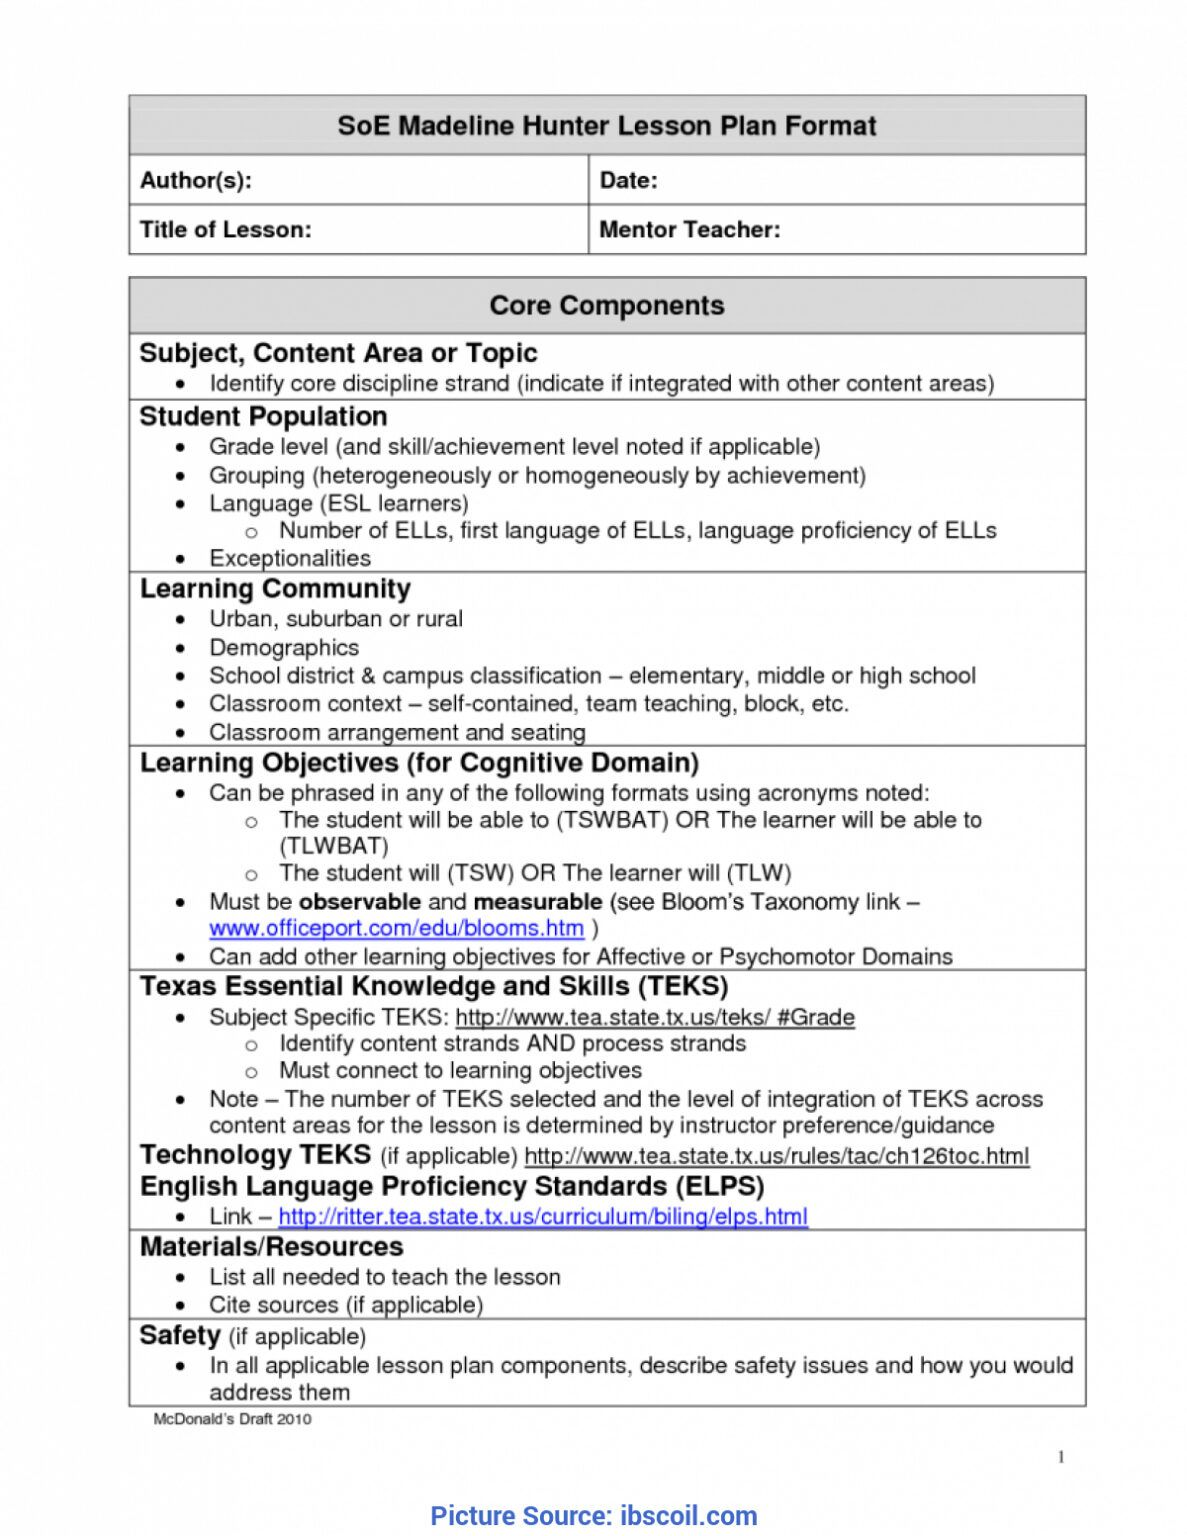 Madeline Hunter Lesson Plan Template Twiroo Com Lesso Pertaining To Mad Madeline Hunter Lesson Plan Guided Reading Lesson Plan Template Lesson Plan Templates Madeline hunter lesson plan template